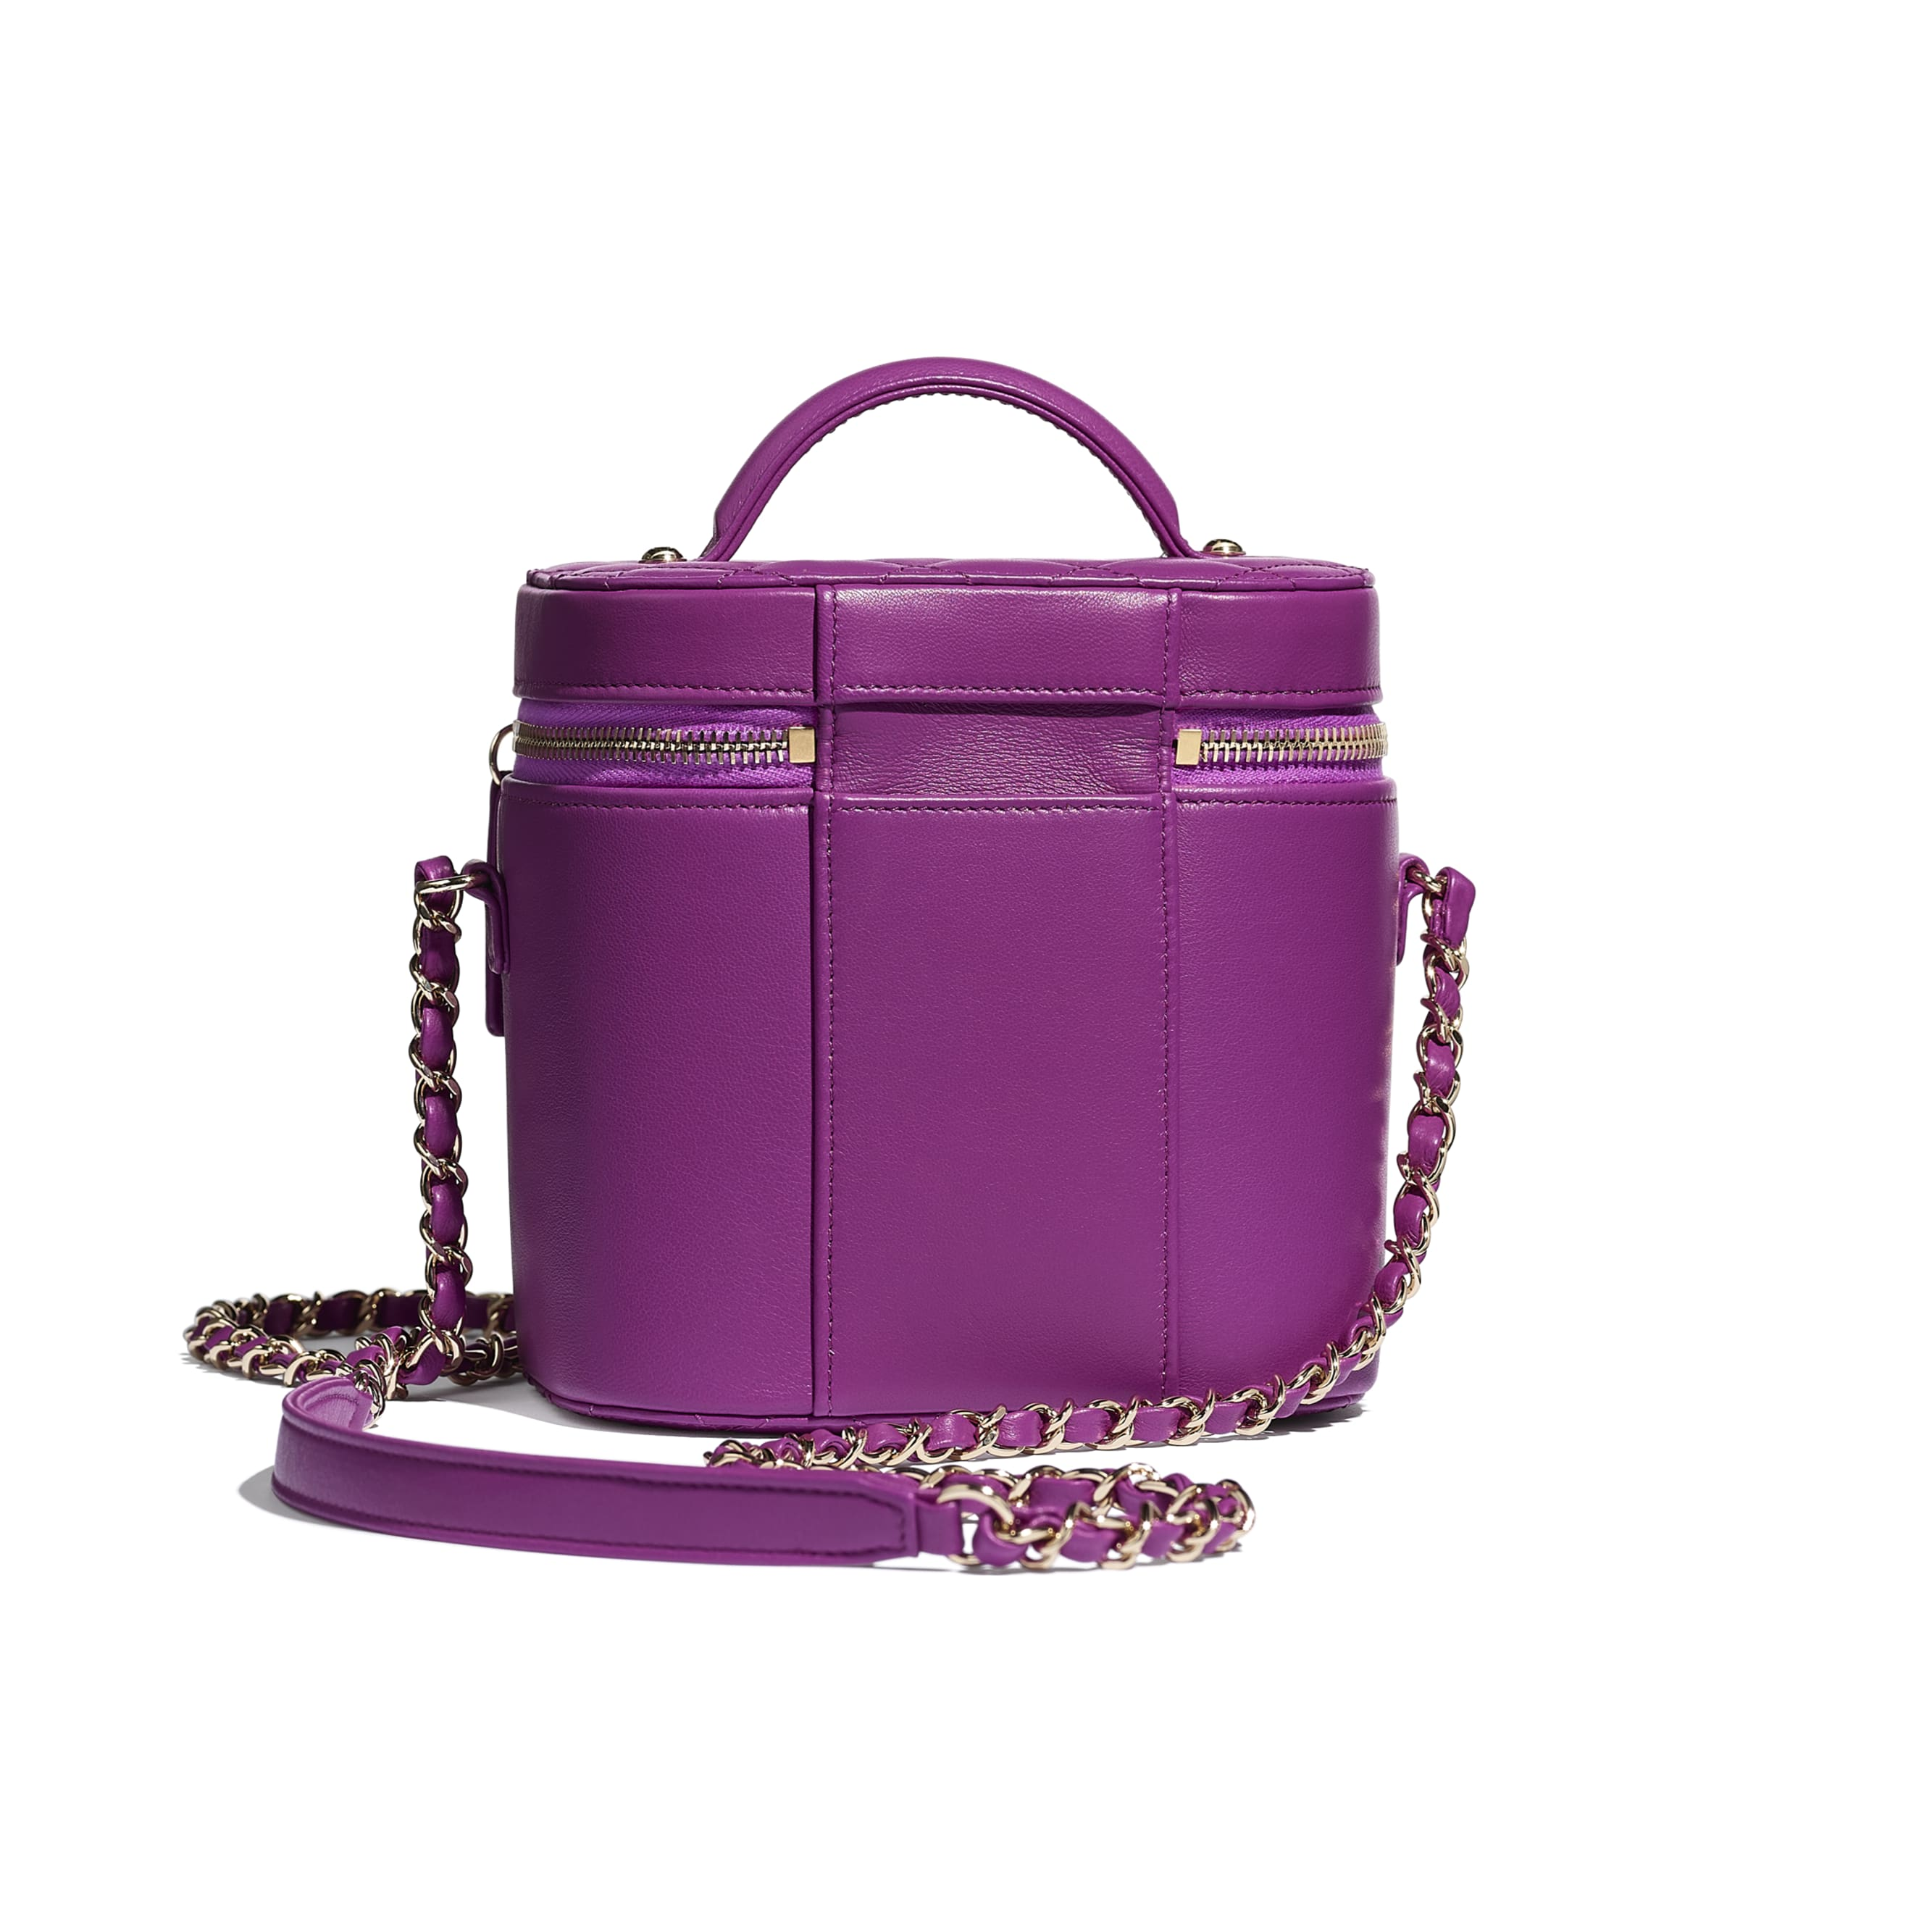 Vanity Case - Purple - Lambskin, Crystal, Calfskin & Gold-Tone Metal - CHANEL - Alternative view - see standard sized version